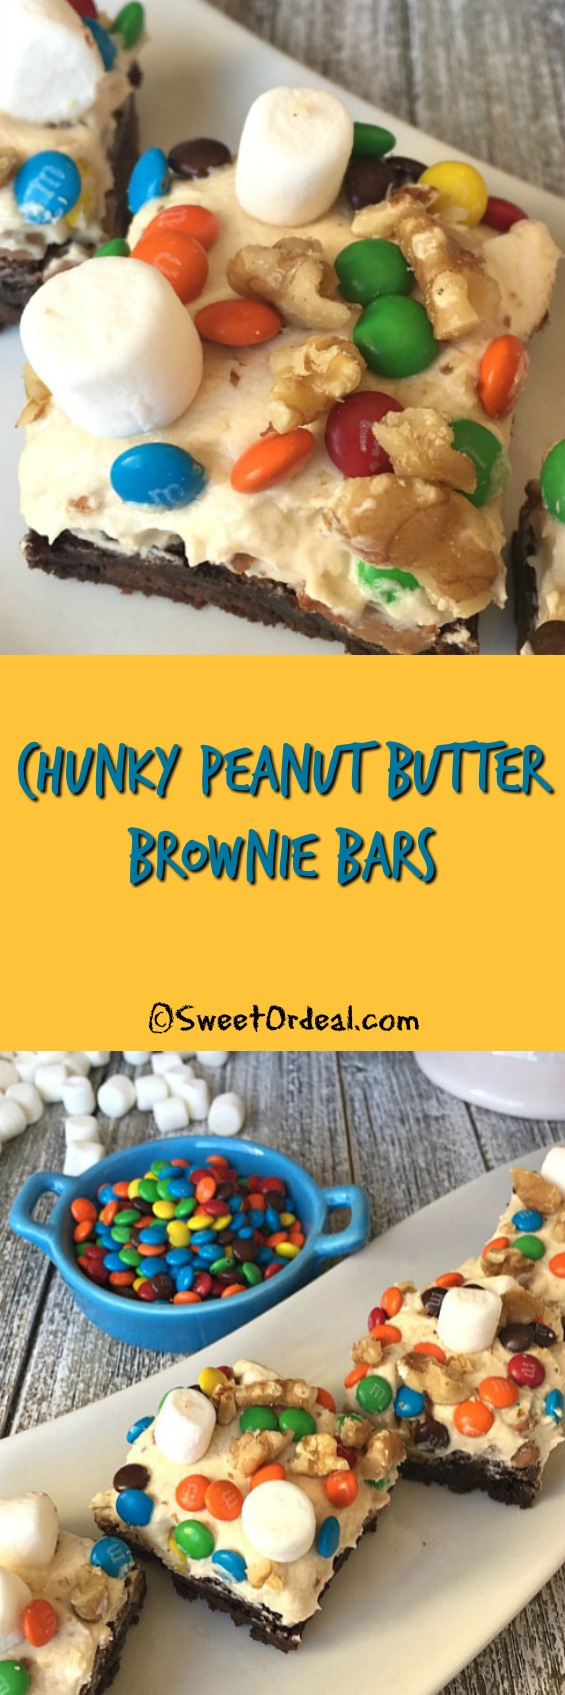 Chunky Peanut Butter Brownie Bars